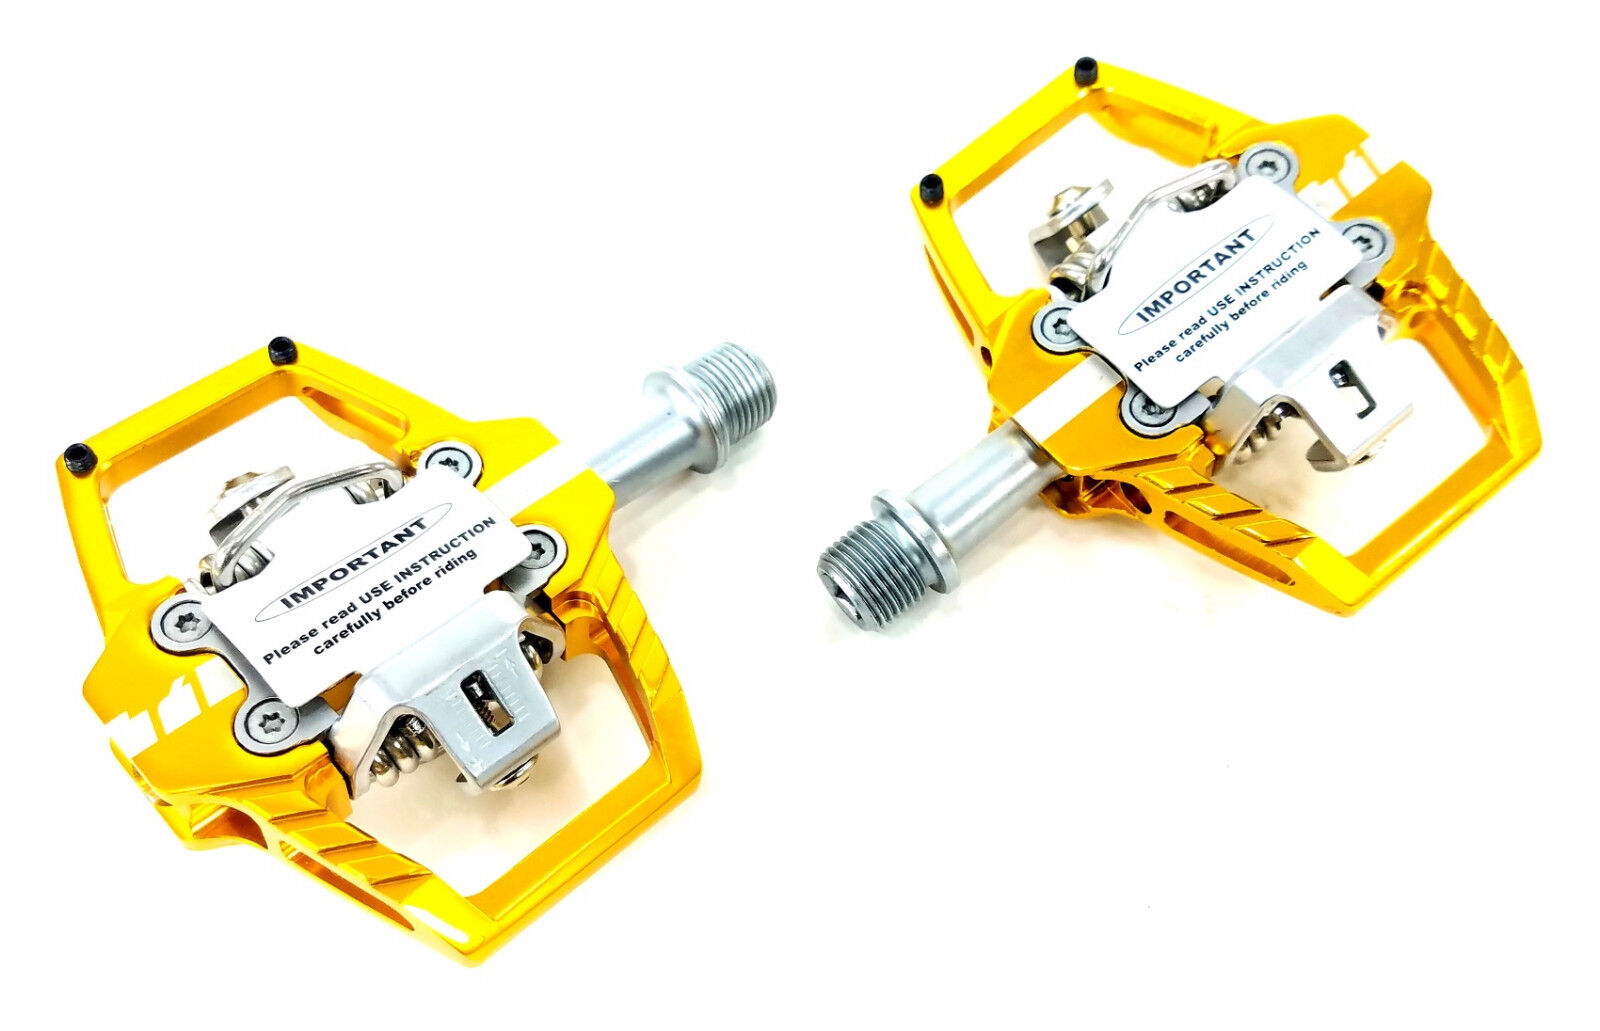 HT Components T1 Enduro Race Mountain Bike Pedals - gold, Clipless, with Cleats